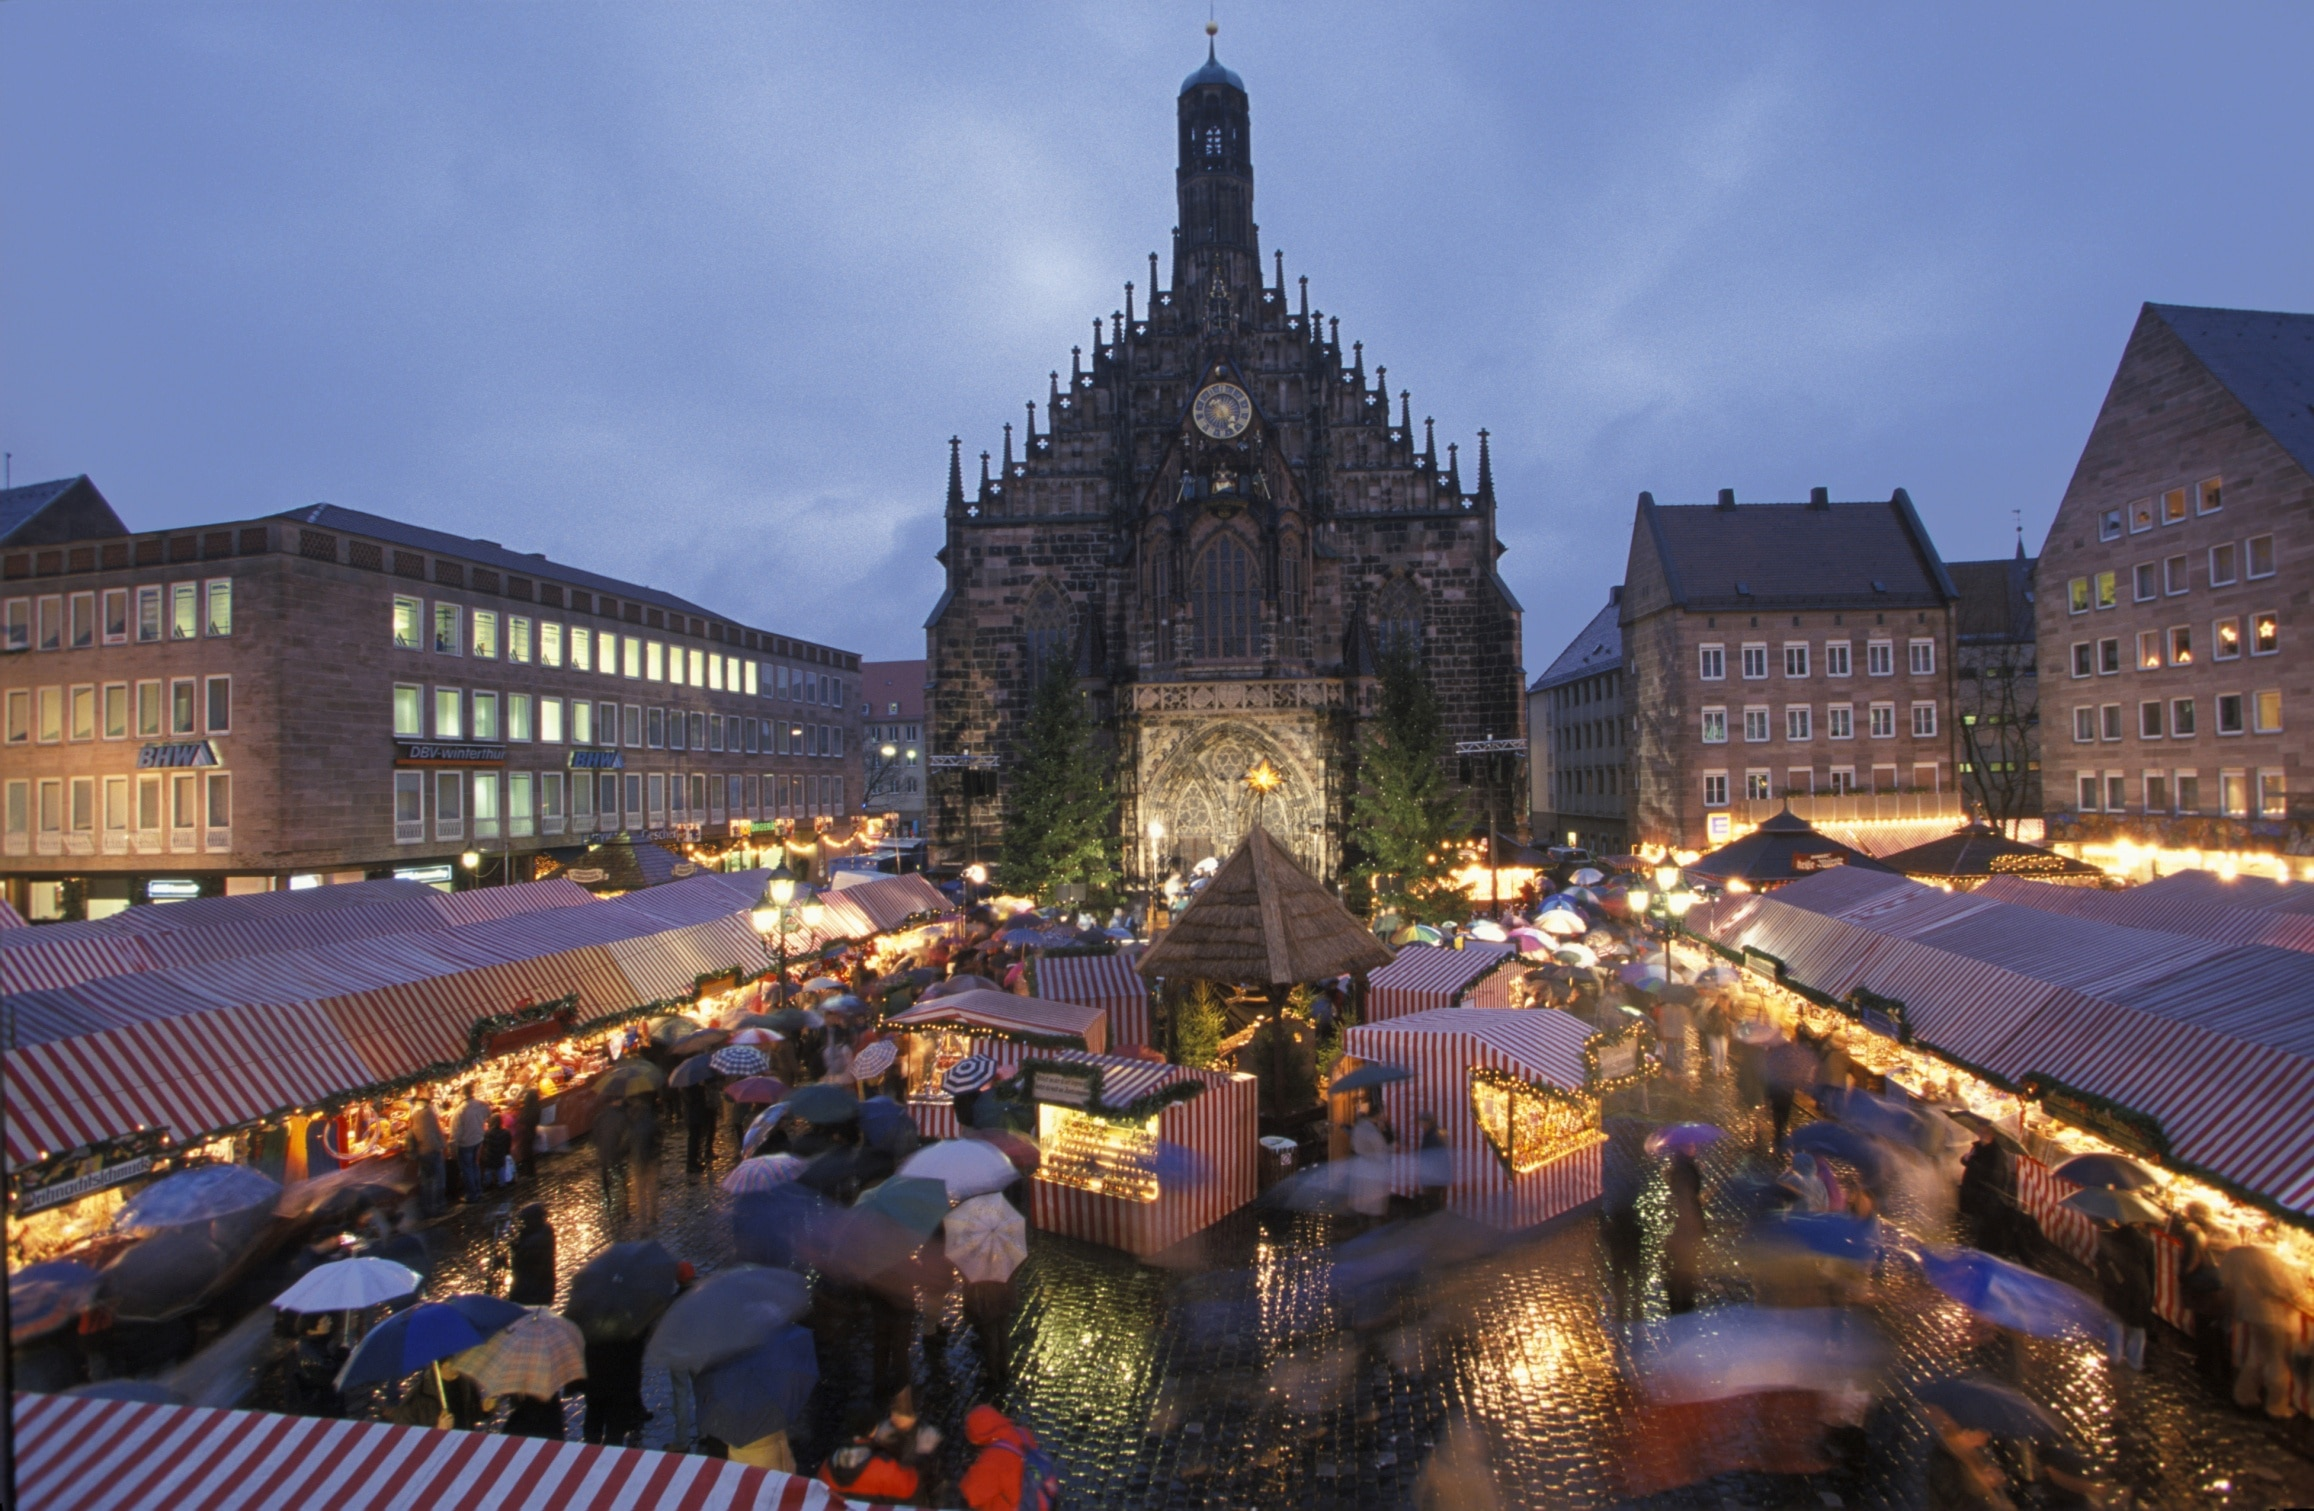 During your visit to Nuremberg, you can search for that perfect souvenir at Nuremberg Christmas Market. Experience the area's museums and festivals.